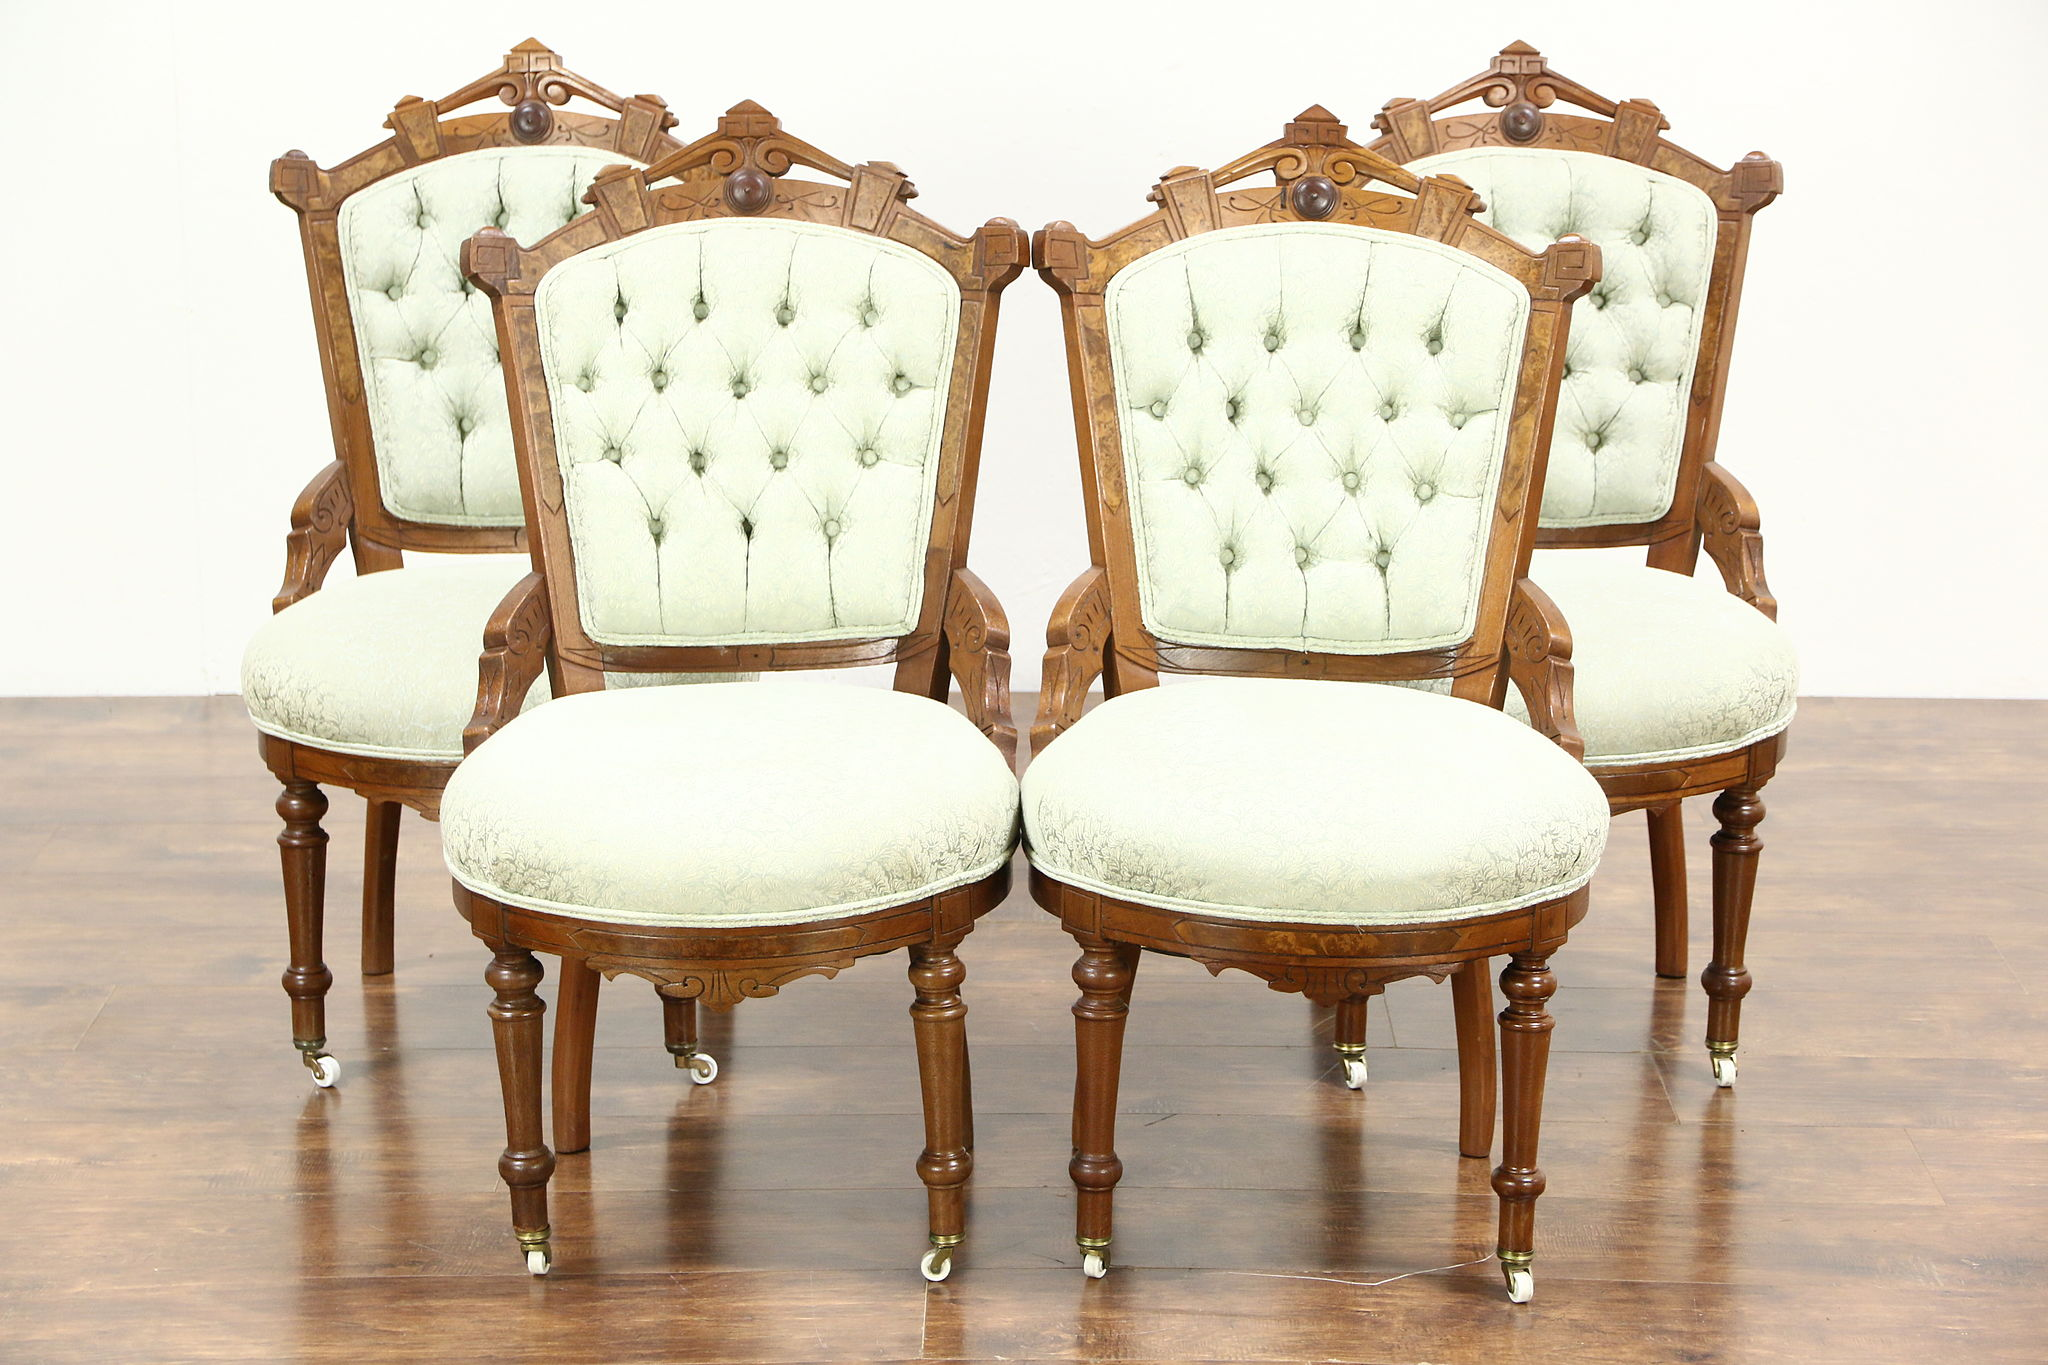 Antique Parlor Chairs Victorian Eastlake Antique Set Of 4 Walnut Game Breakfast Or Parlor Chairs